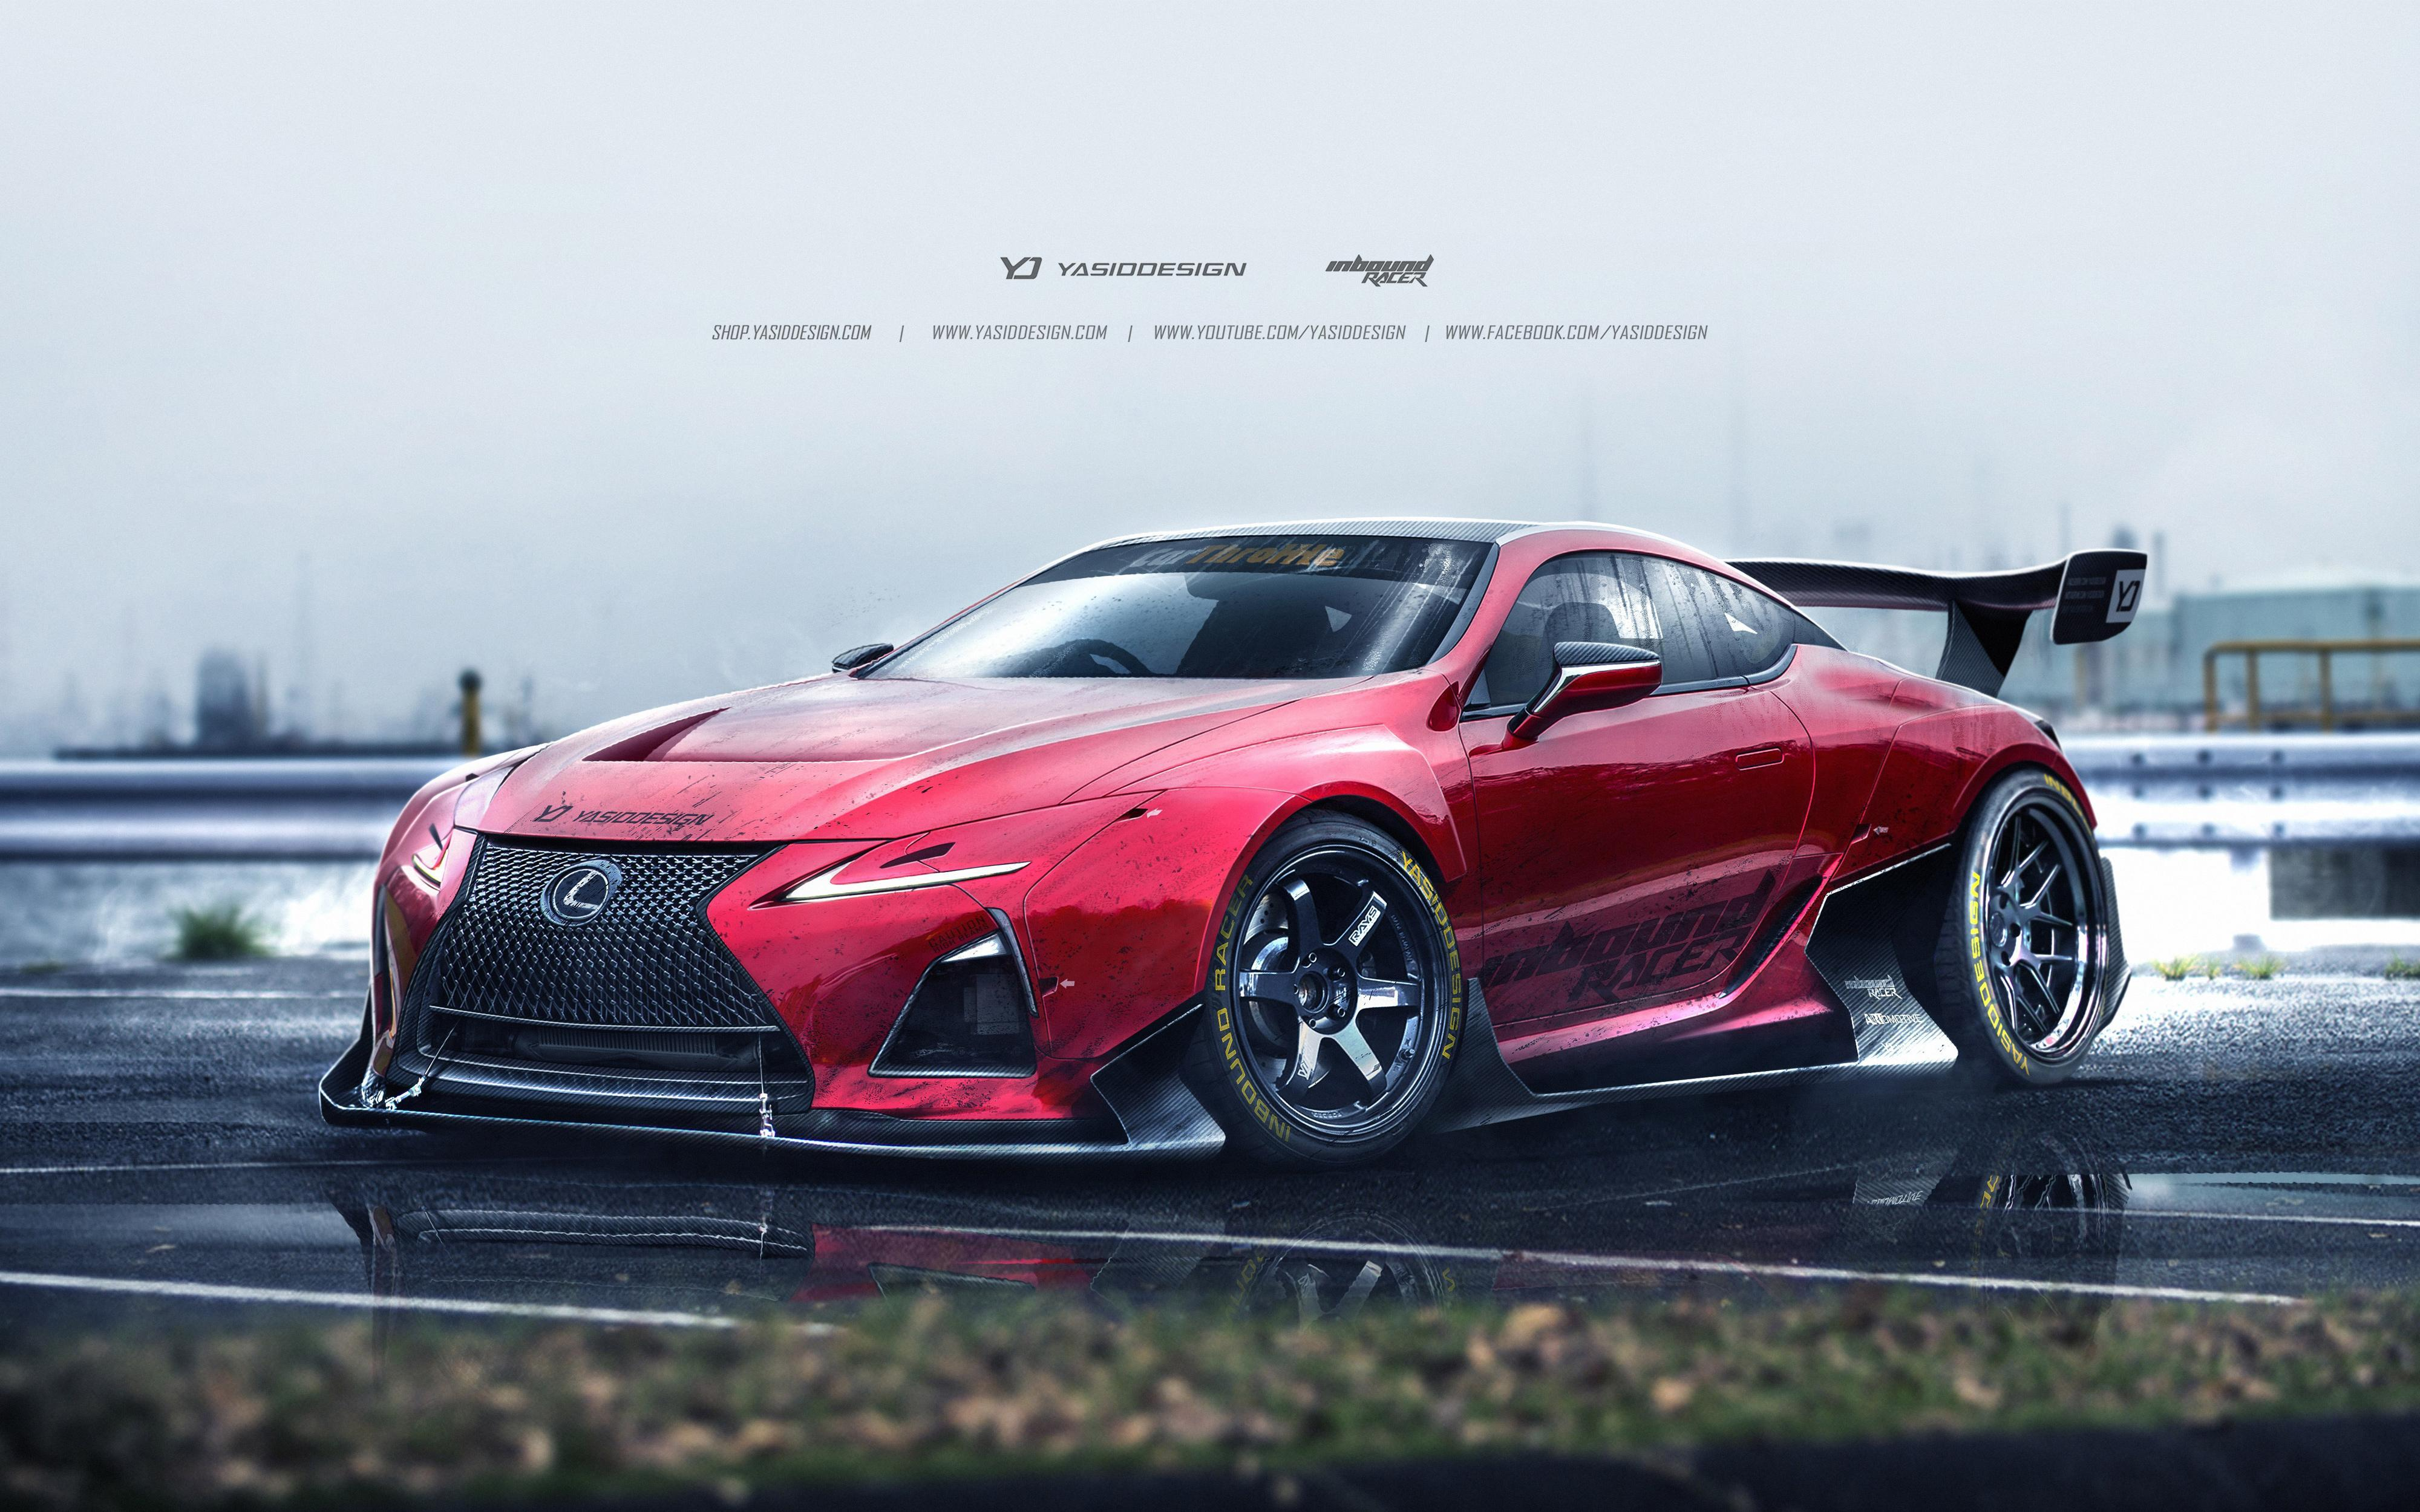 lexus lc 500 hd wallpapers full hd pictures - Wallpaper Aholic